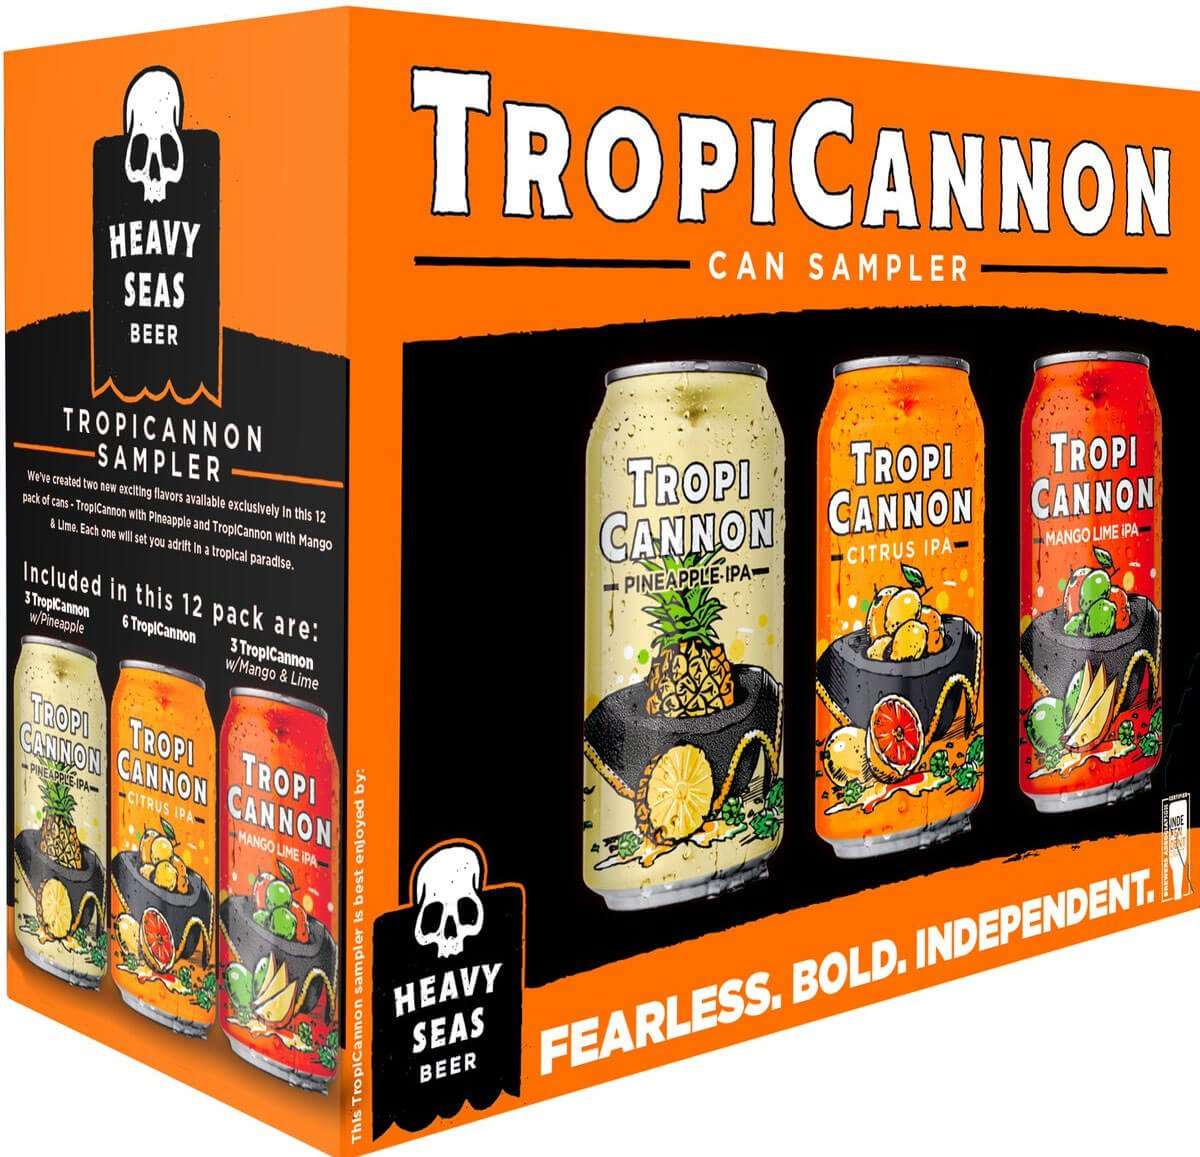 Packaging for TropiCannon 12 Pack featuring the TropiCannon Citrus IPA, TropiCannon Pineapple IPA, and TropiCannon Mango Lime IPA